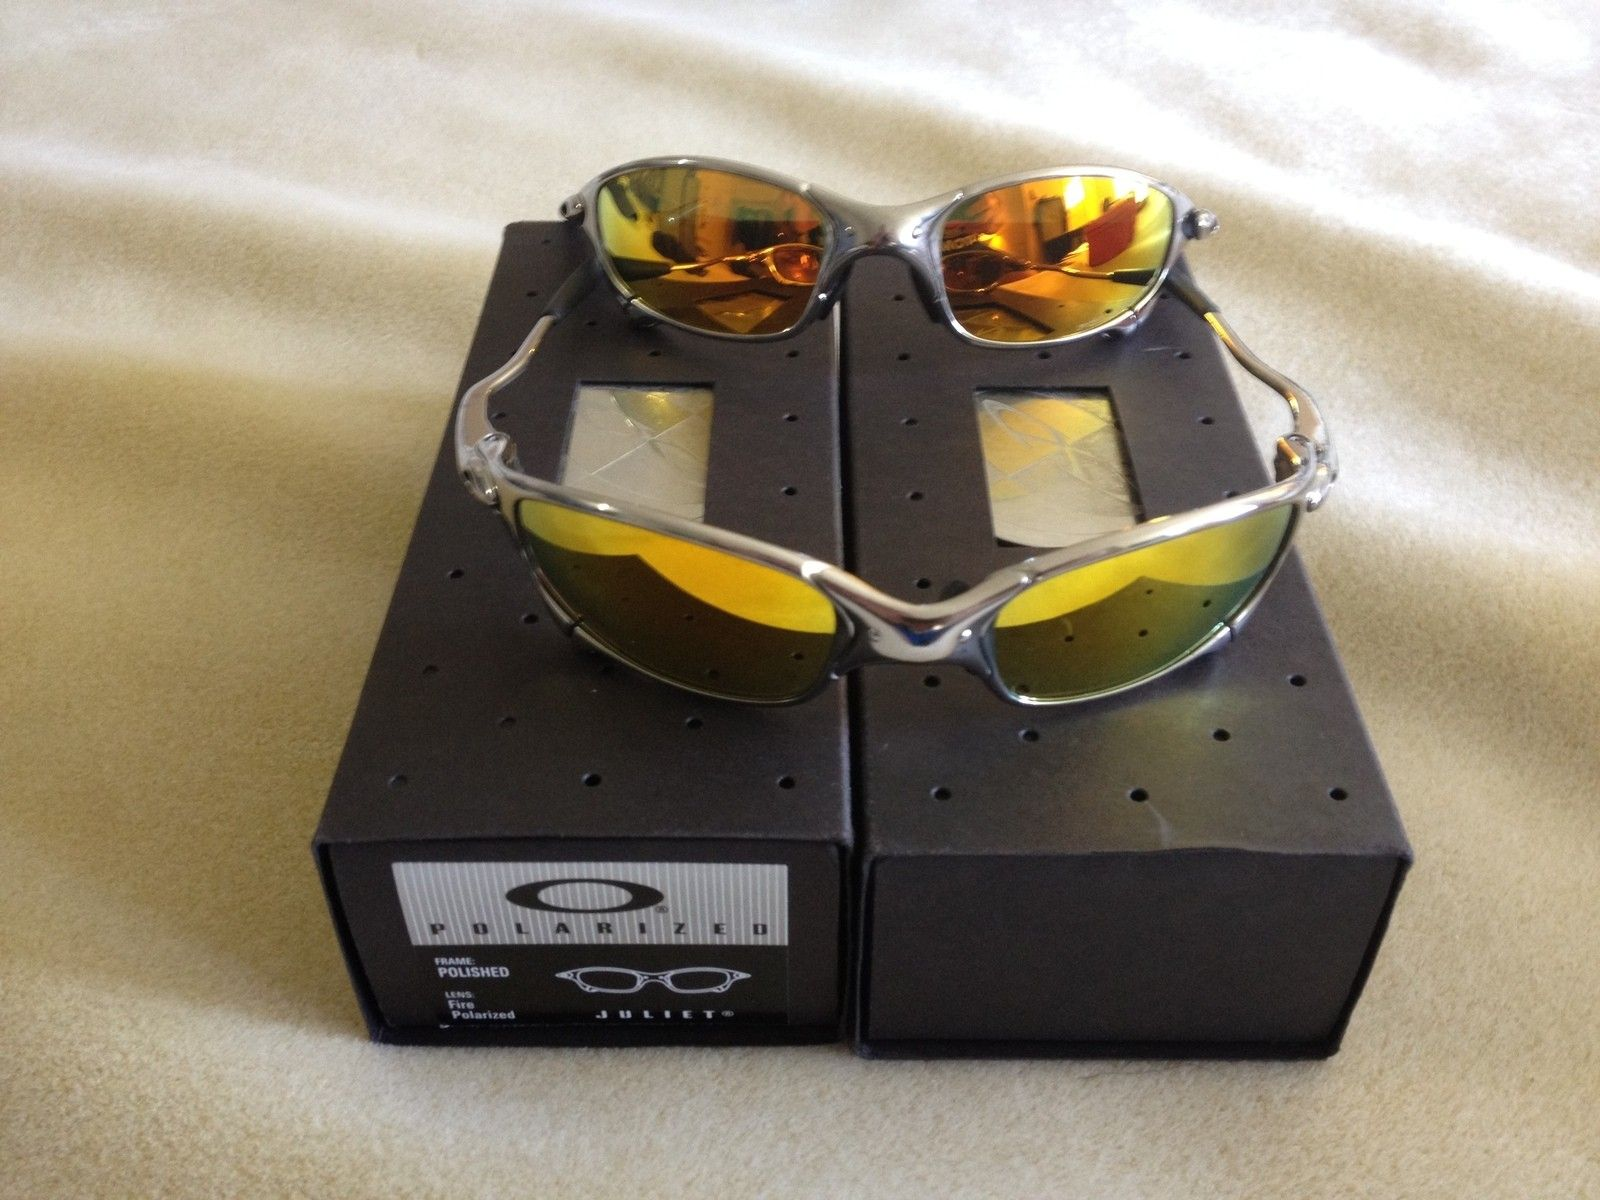 Sharing the collection- love this stuff! - Juliet Fire Polarized.JPG